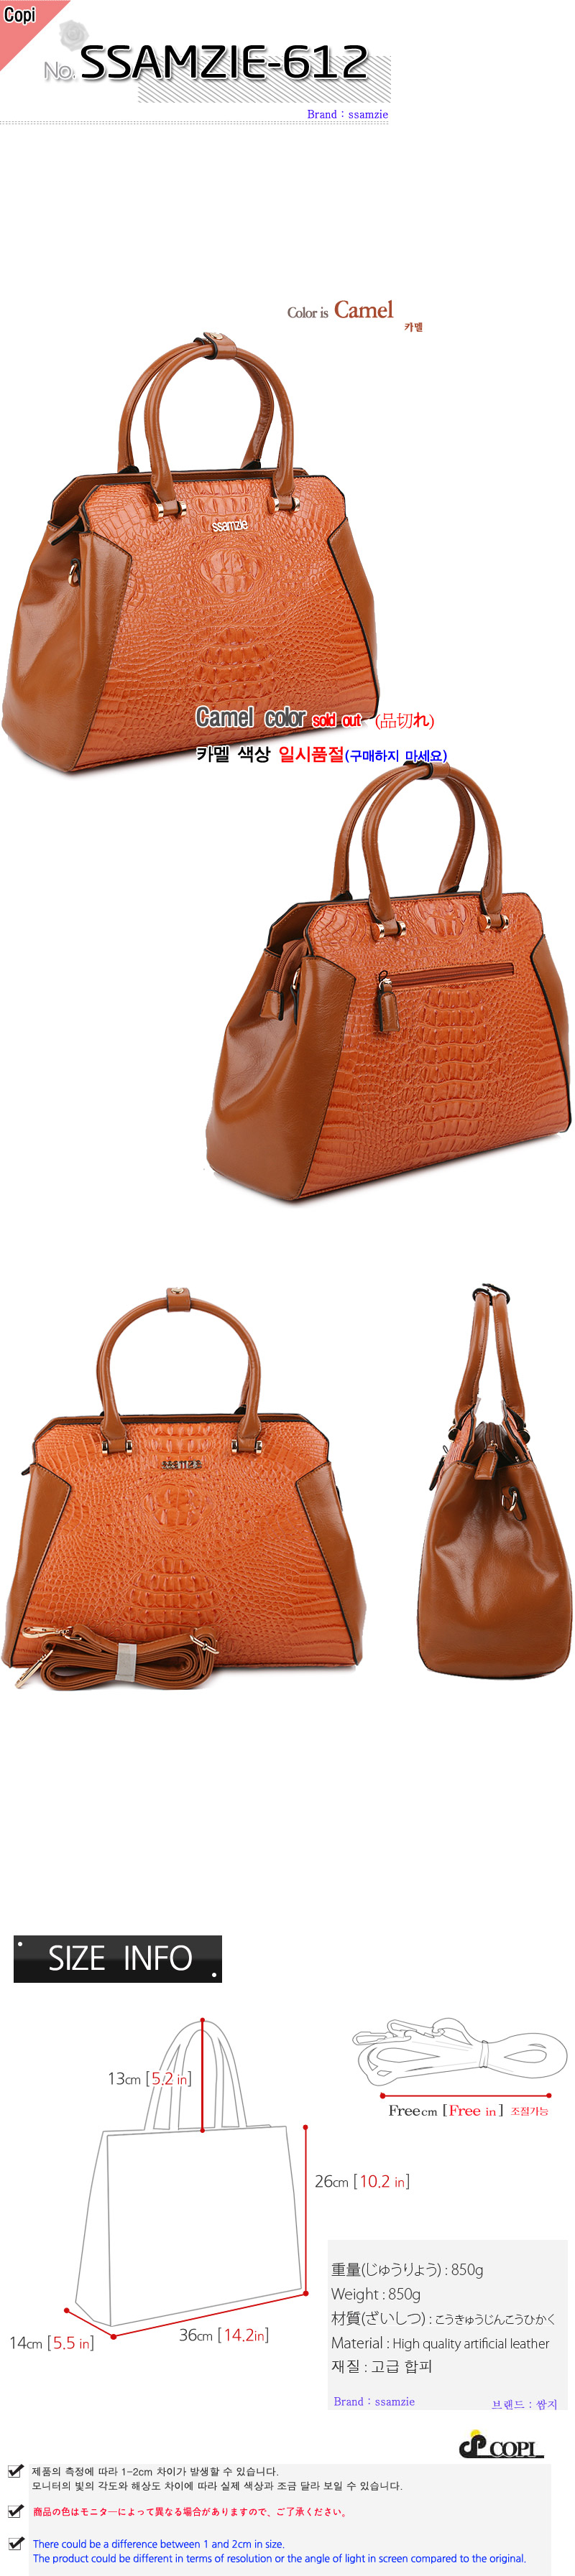 ssamzie handbag no. SSAMZIE-612view